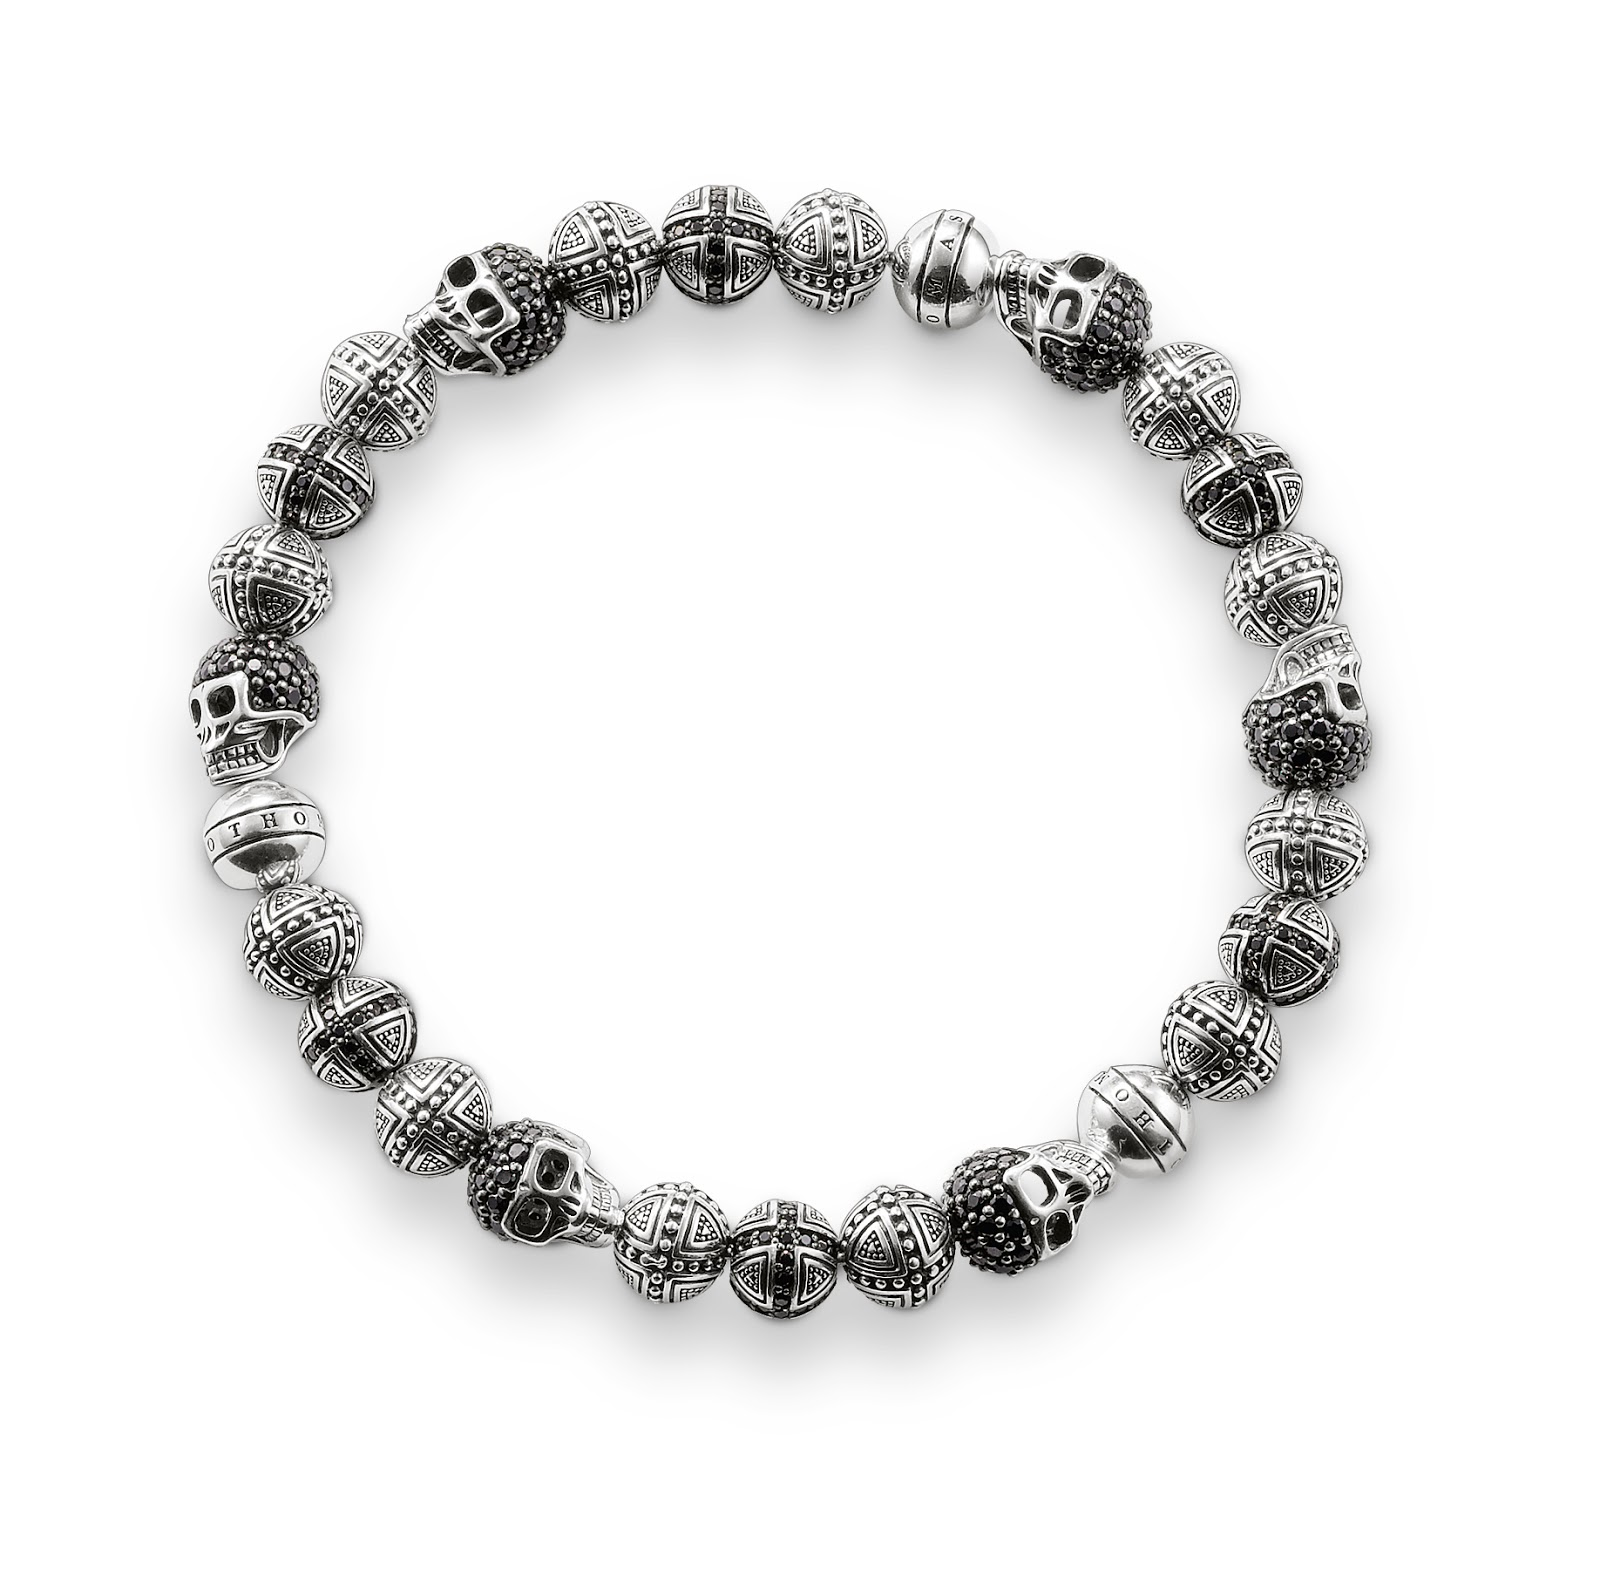 You Need To Be A Rebel With Cash For This Skull Bracelet Avilable At Price  £719